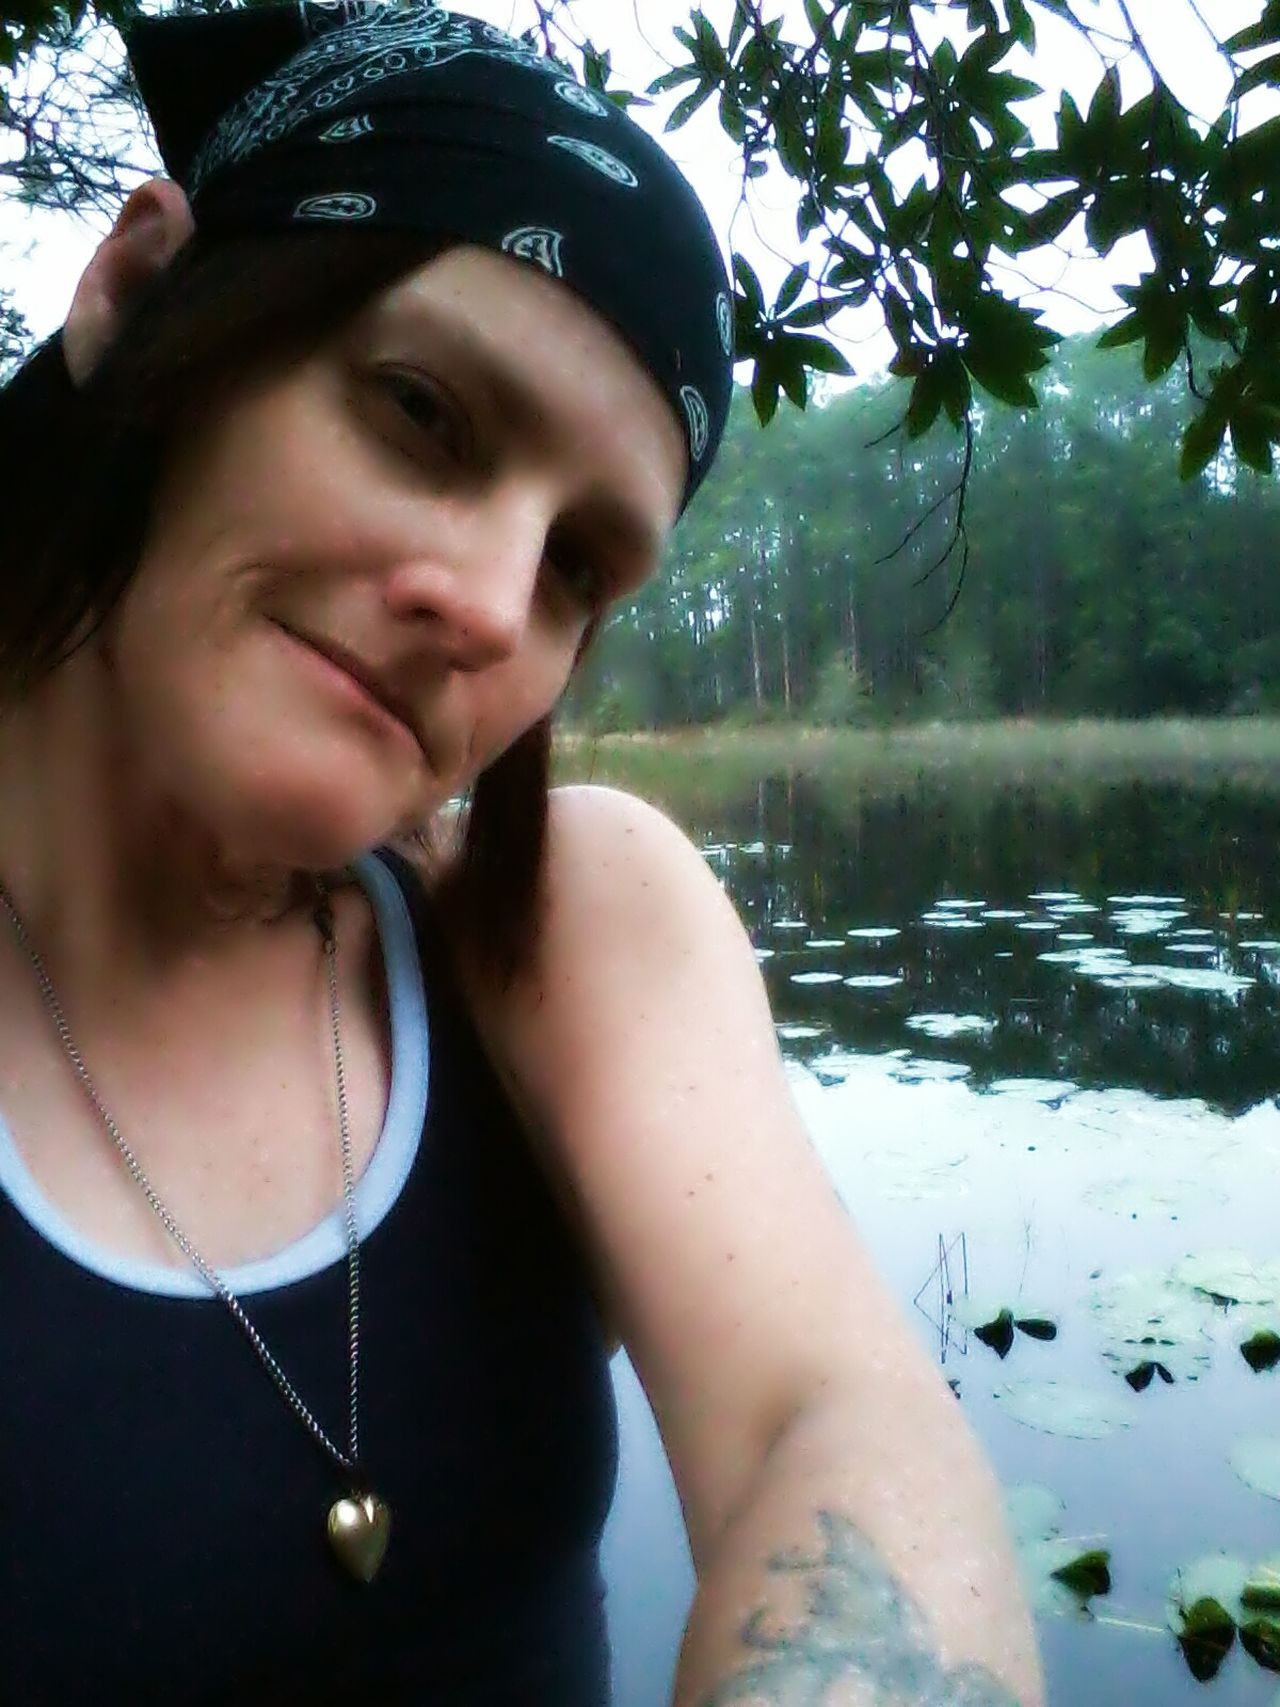 Hi! That's Me Hanging Out at the lil pond this morning on 3/12/15